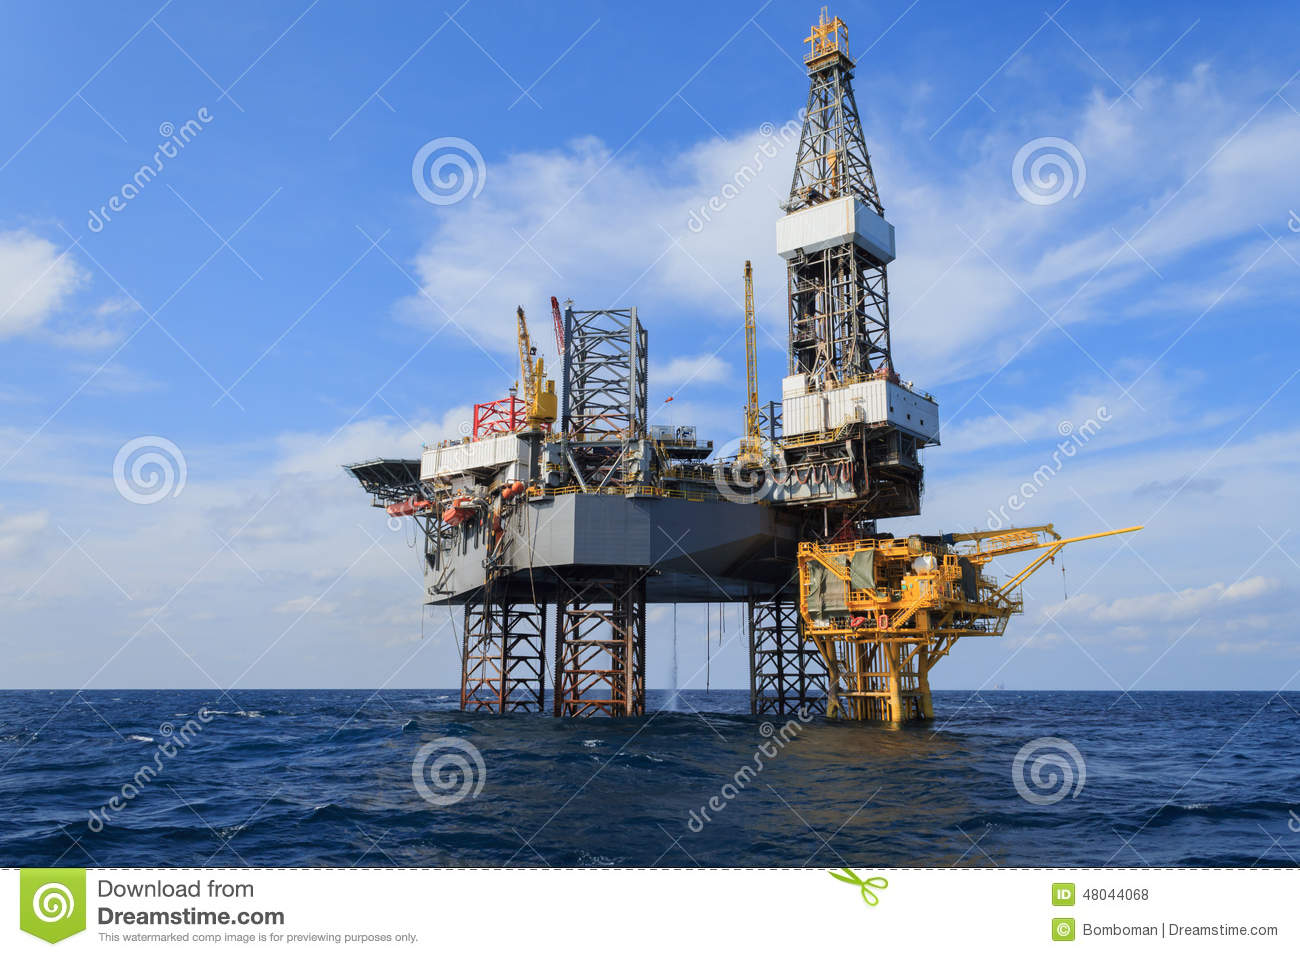 Offshore-Jack Up Drilling Rig Over die Förderplattform